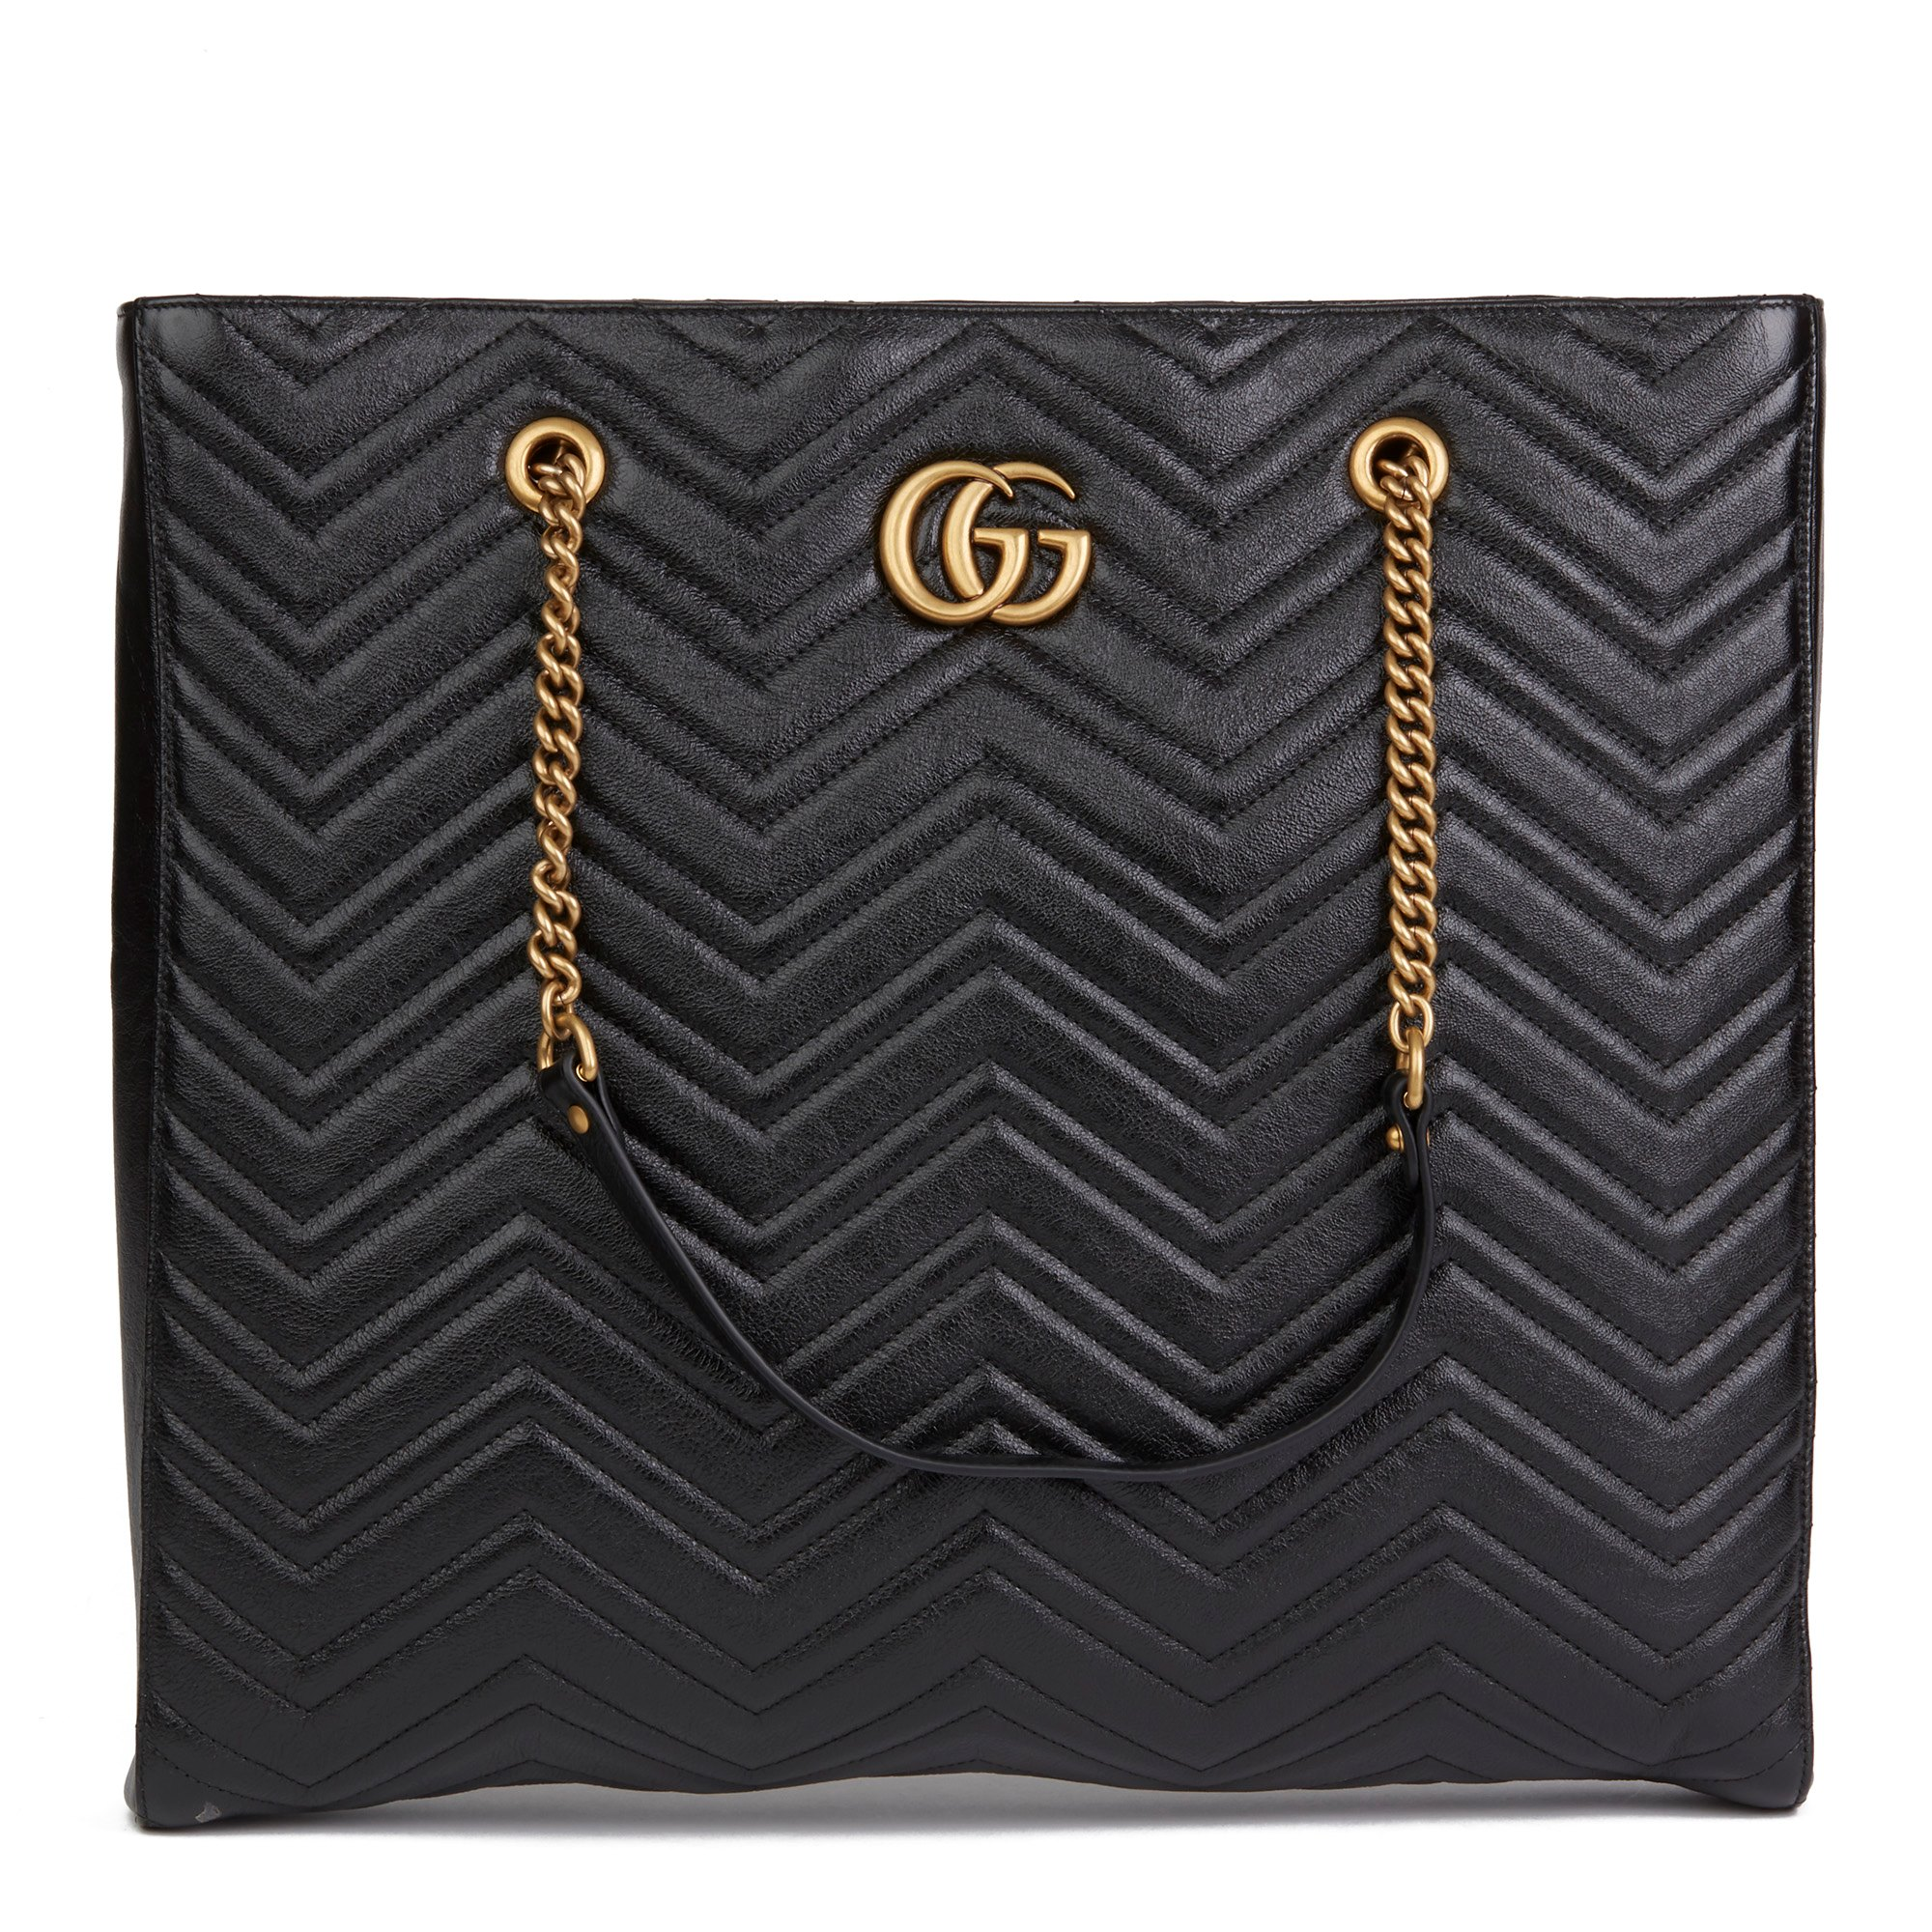 Gucci Black Quilted Shiny Calfskin Leather Marmont Shoulder Tote